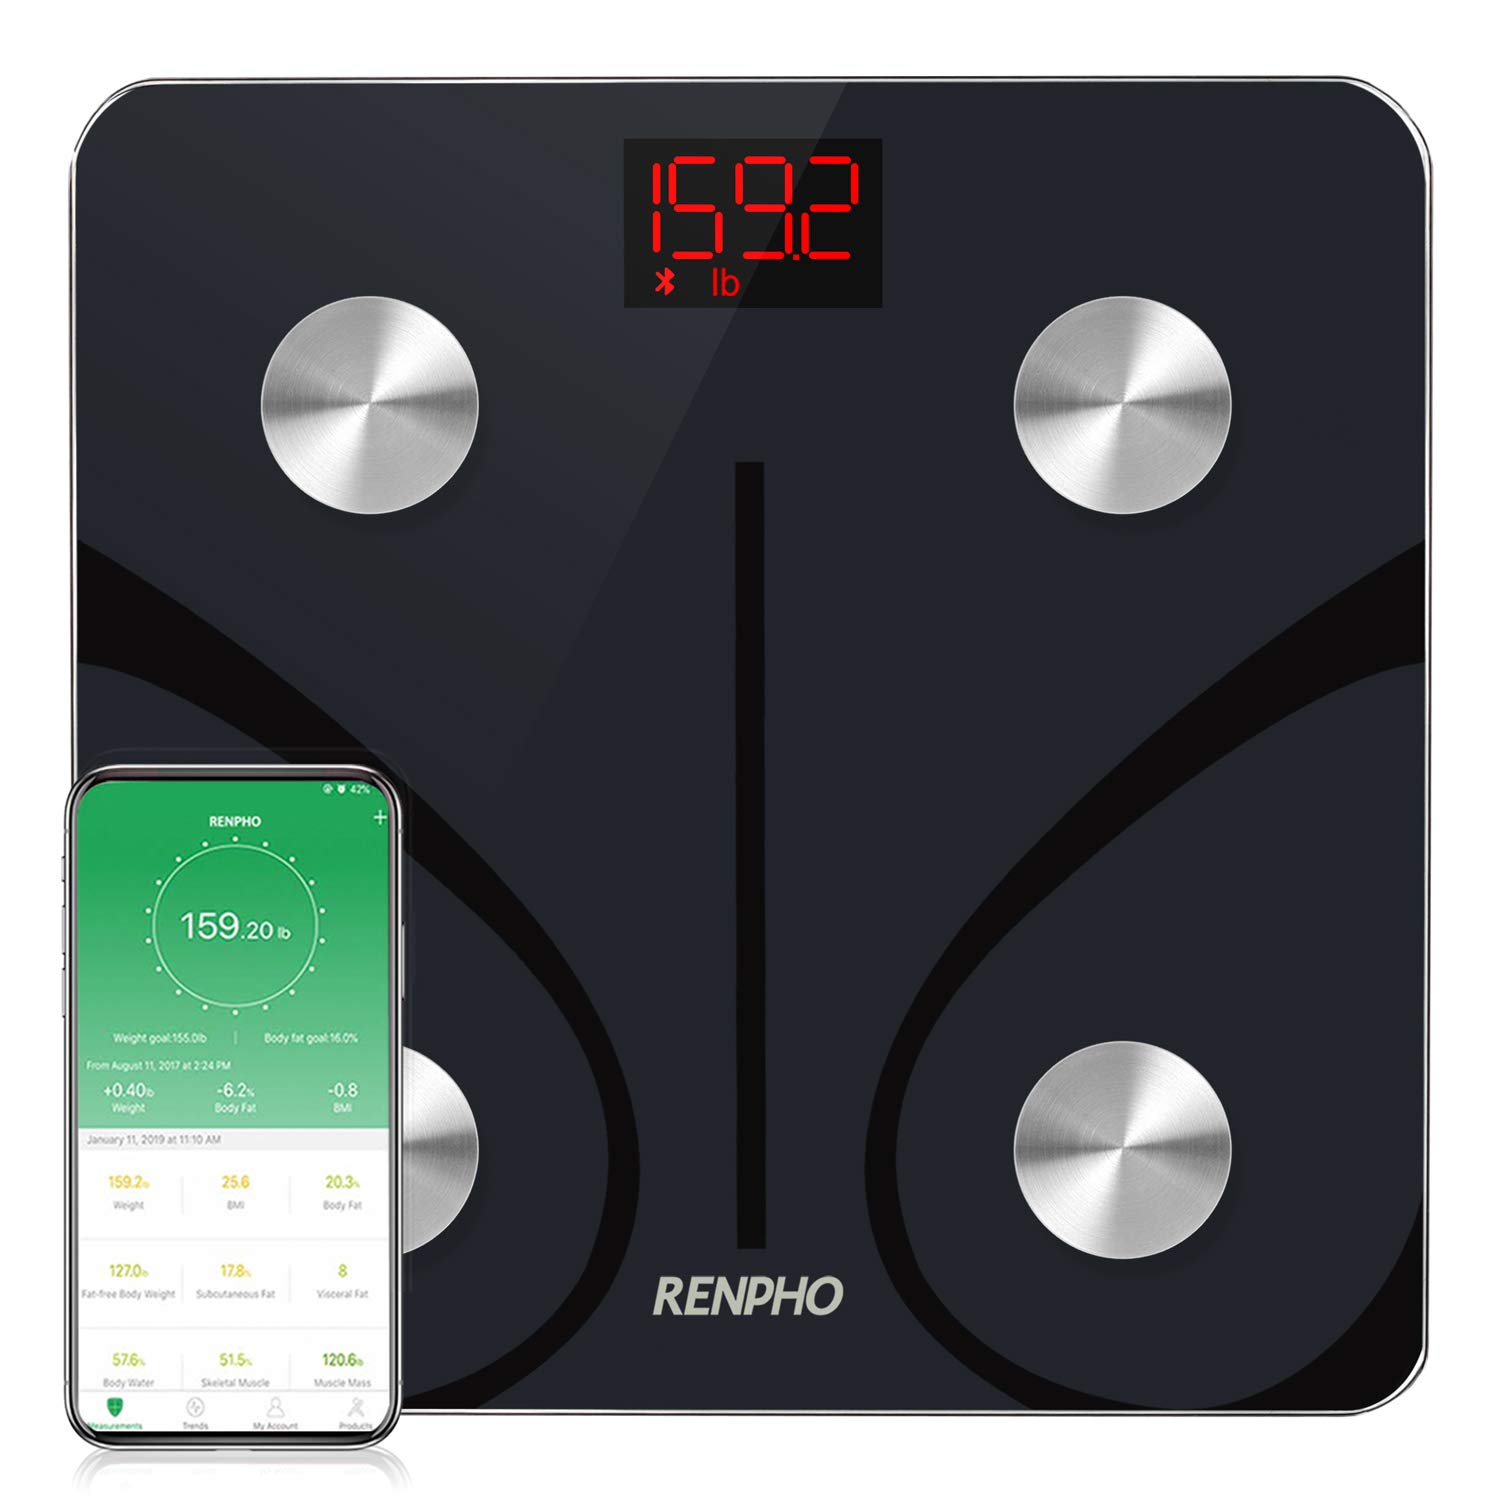 RENPHO Bluetooth Body Fat Scale, Weight Scale Digital Bathroom Smart Body Composition Analyzer Wireless BMI Scale Health Monitor with Smartphone APP, 396 lbs/180kg by RENPHO